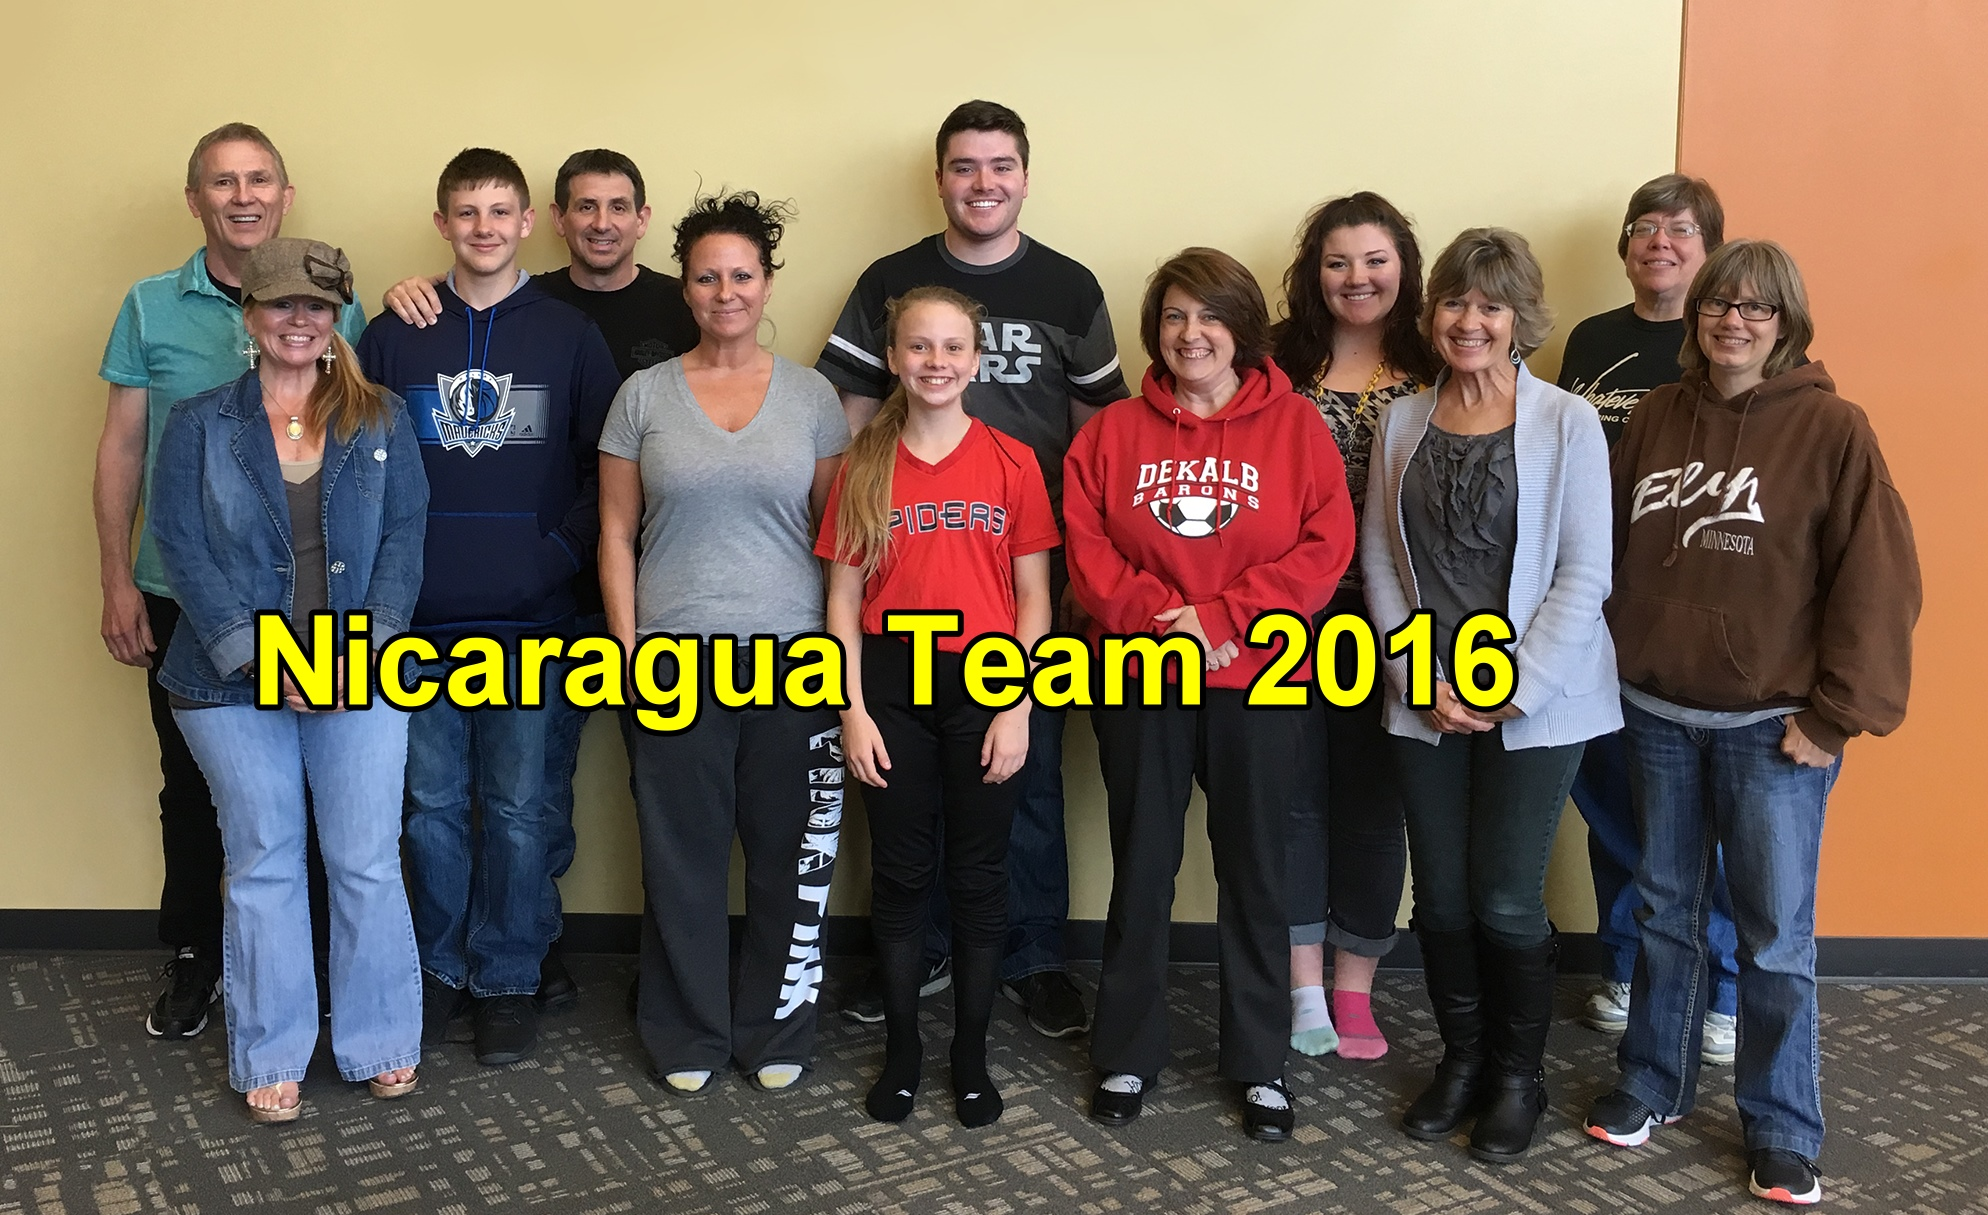 "We are just a few days away from our trip to Nicaragua to share the hope of Jesus with the people there and to encourage our sister church, the ""Tabern á culo de Agua Viva"" (Tabernacle of Living Water). Team members are (l to r):  Bill Lyne, Michelle Snyder, Cayden Skaggs, Kyle Skaggs, April Bednarczyk, Gracey Yarian, Gavin Moser, Natalie Haley, Amber Poling, Sue Lyne, Becky Gordon, Jennie Stauffer      The team leaves Saturday morning, and we invite you to come and pray with them at 8am at the church.      We will try to post here daily, so check regularly...and keep us in your prayers!"